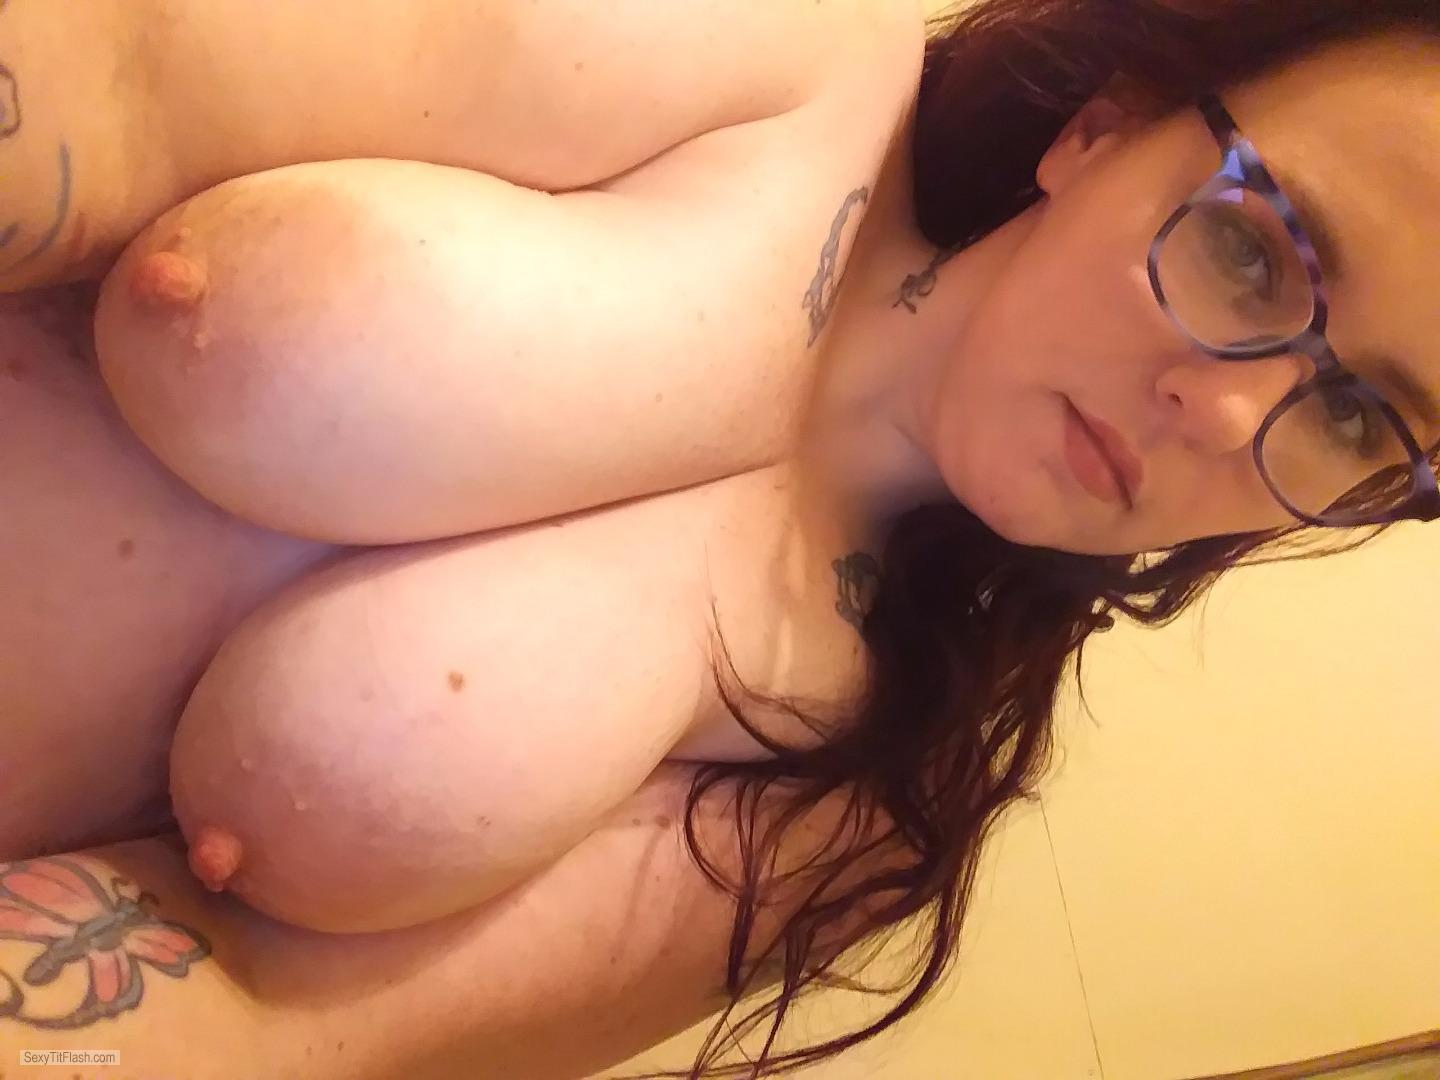 Tit Flash: My Very Big Tits (Selfie) - Topless Dizzy from United States